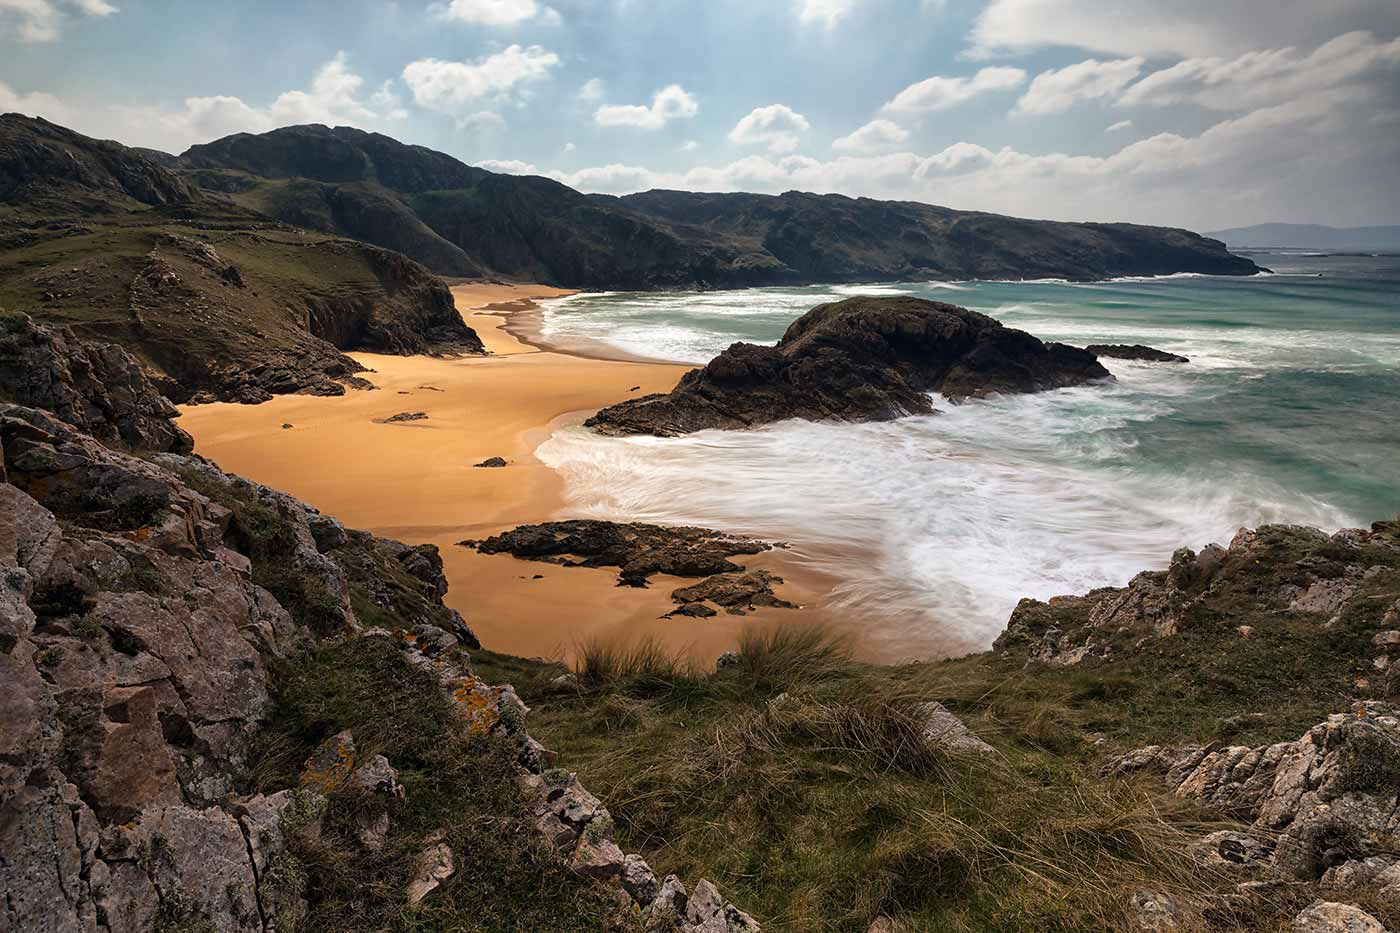 Melmore Head, County Donegal, Ireland